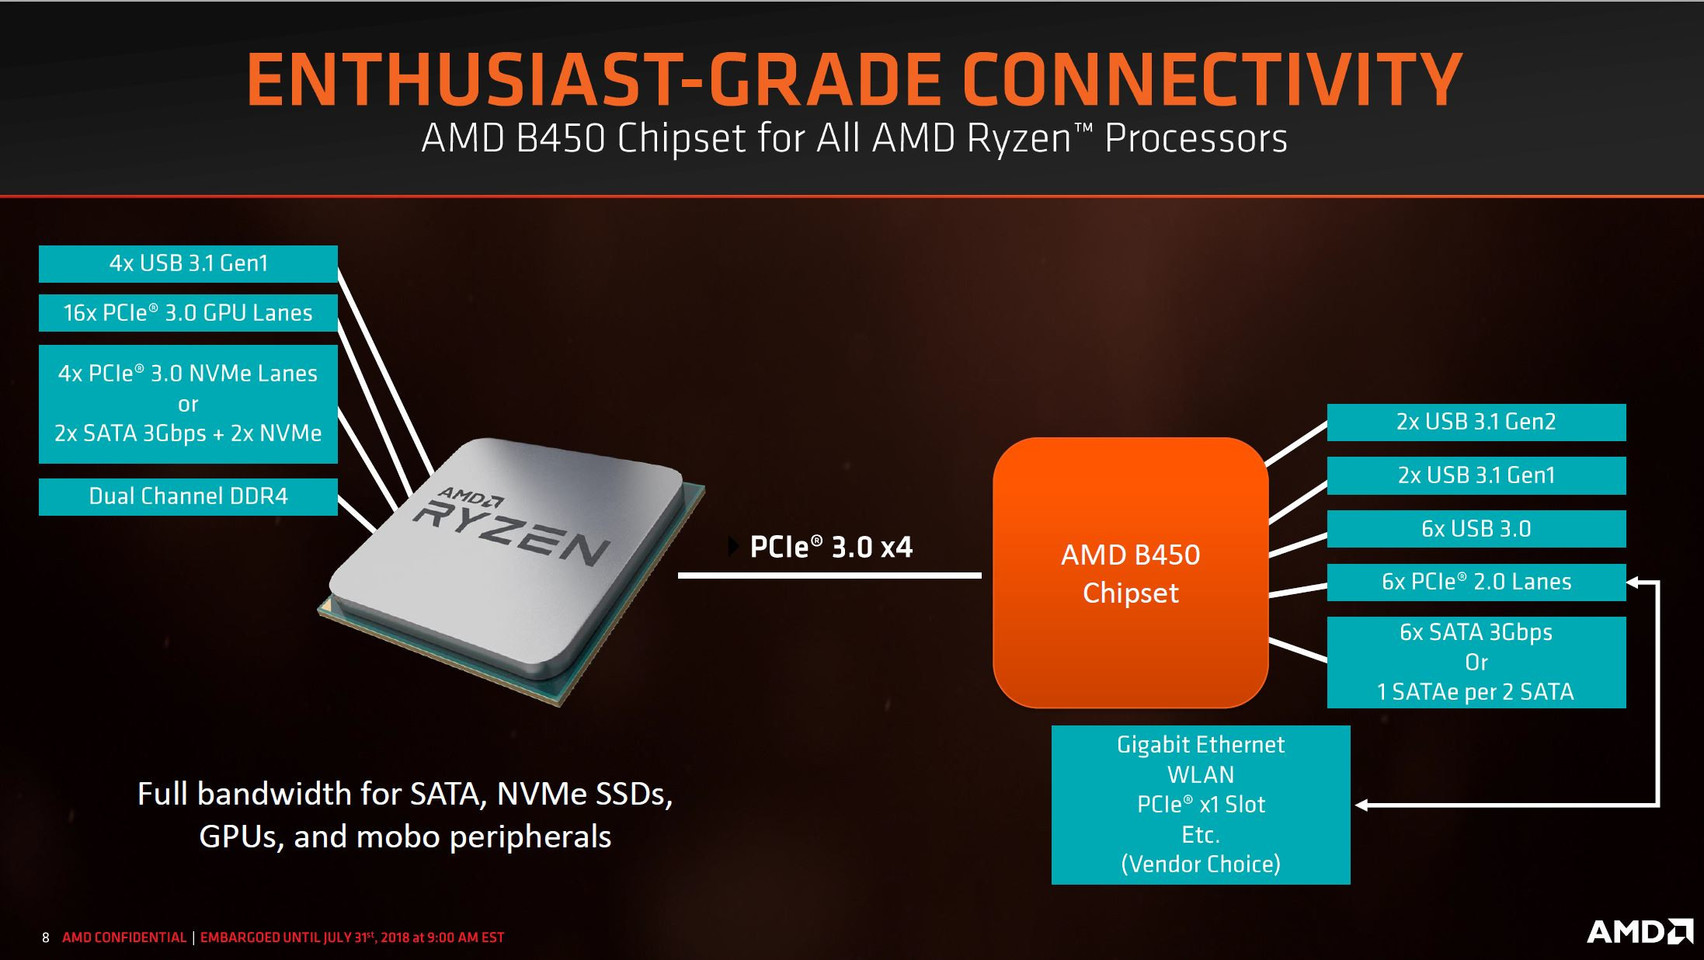 amd b450 chipset for all amd ryzen processors